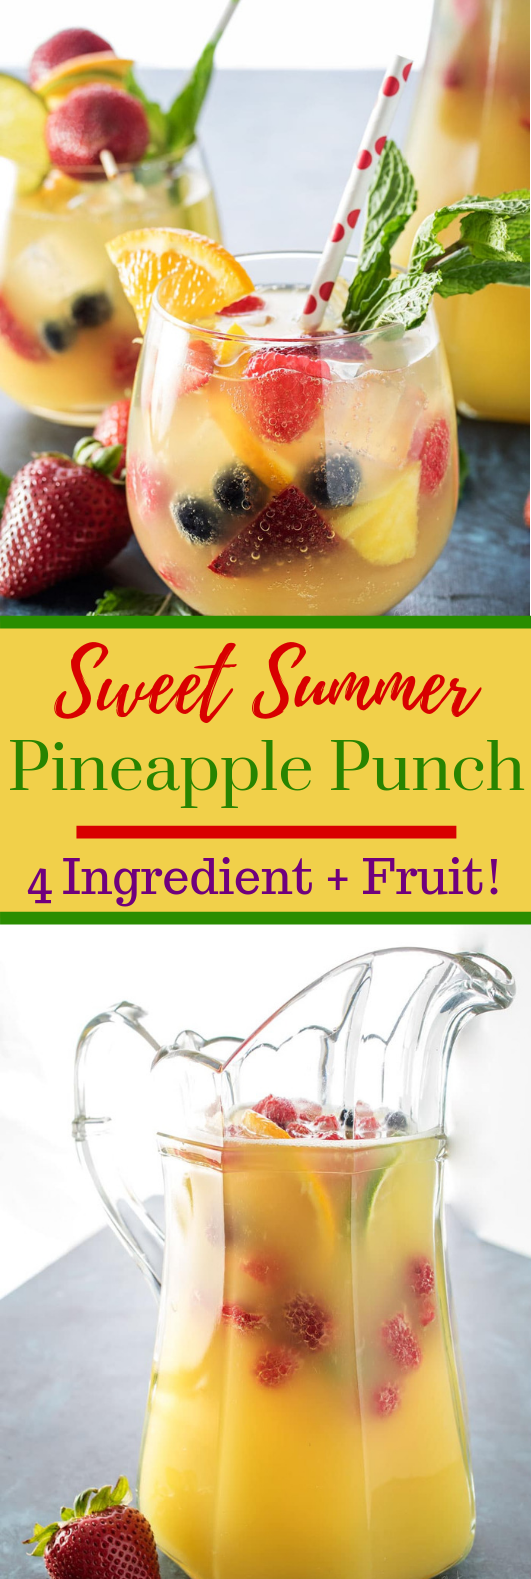 FIZZY PINEAPPLE PUNCH #Summer #Sweetdrink